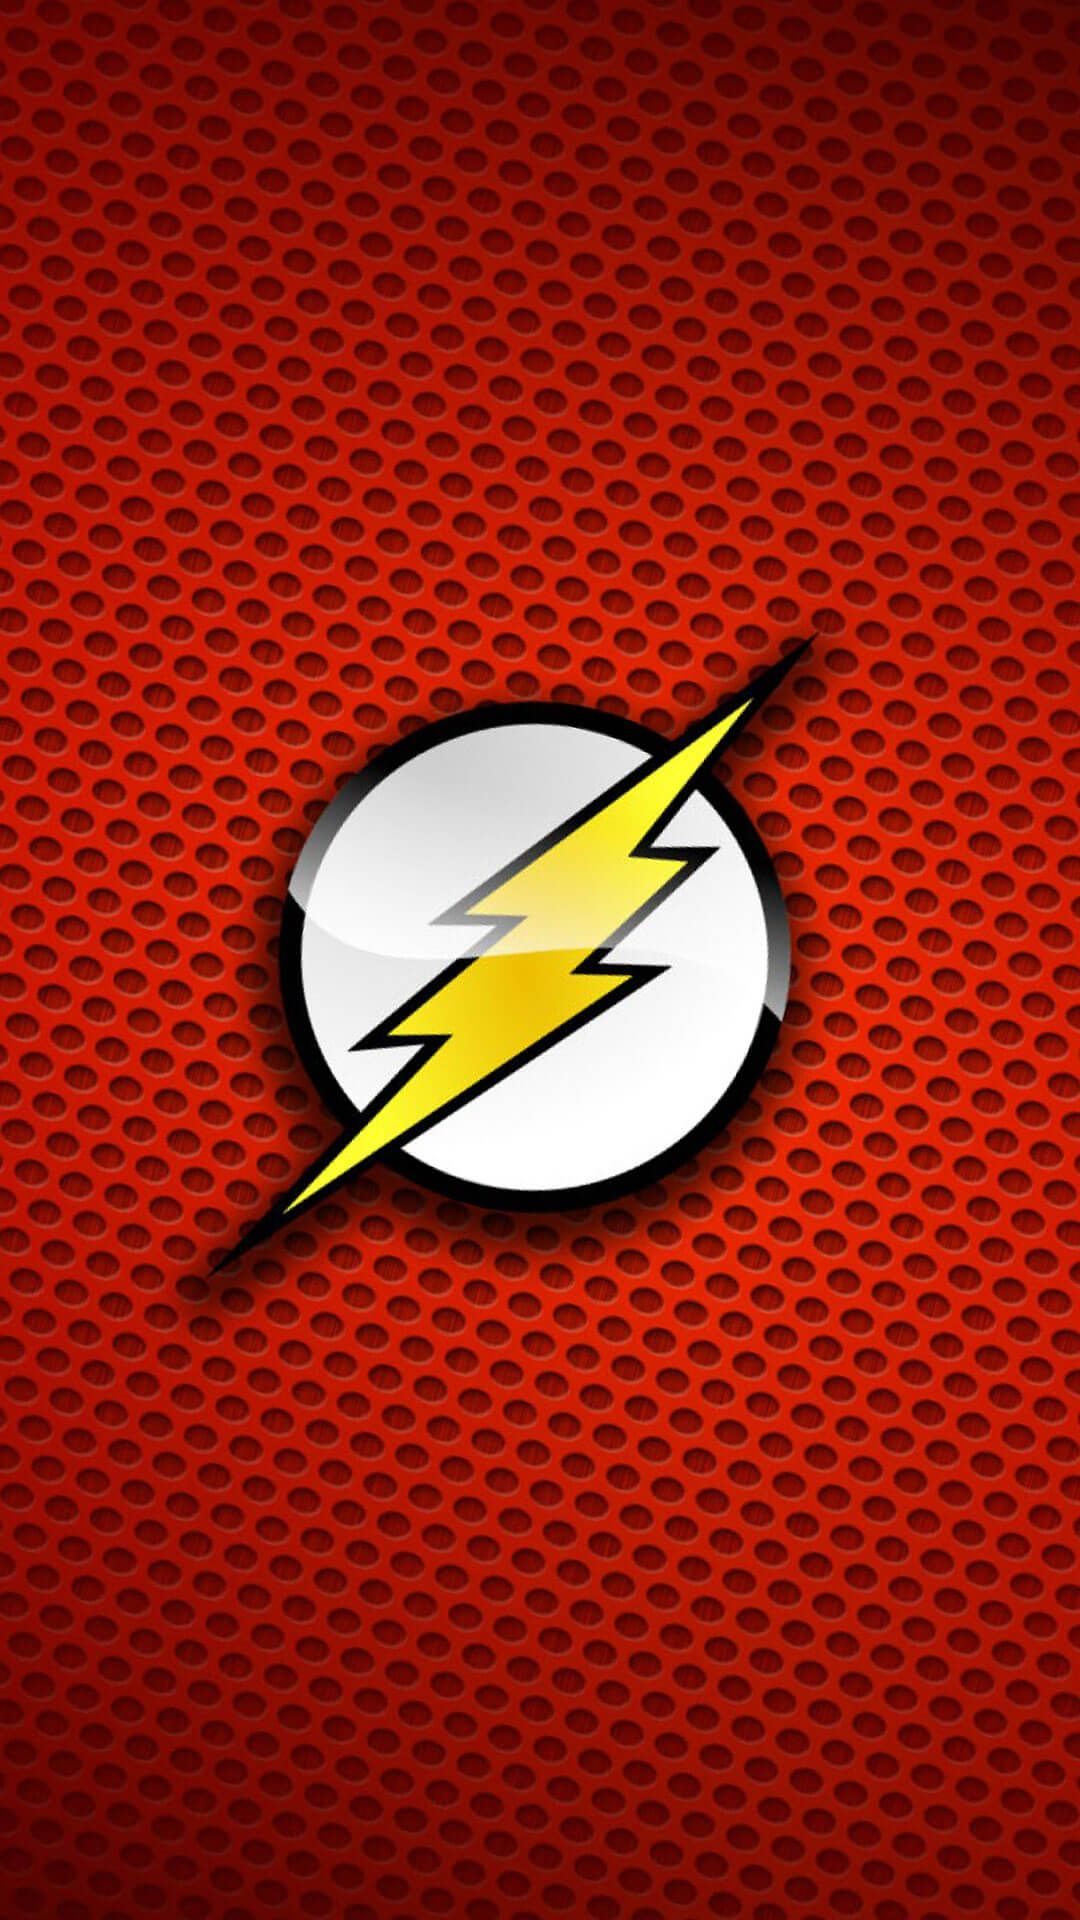 Flash Wallpaper Iphone 6 The Flash Logo Iphone 6 Wallpaper The